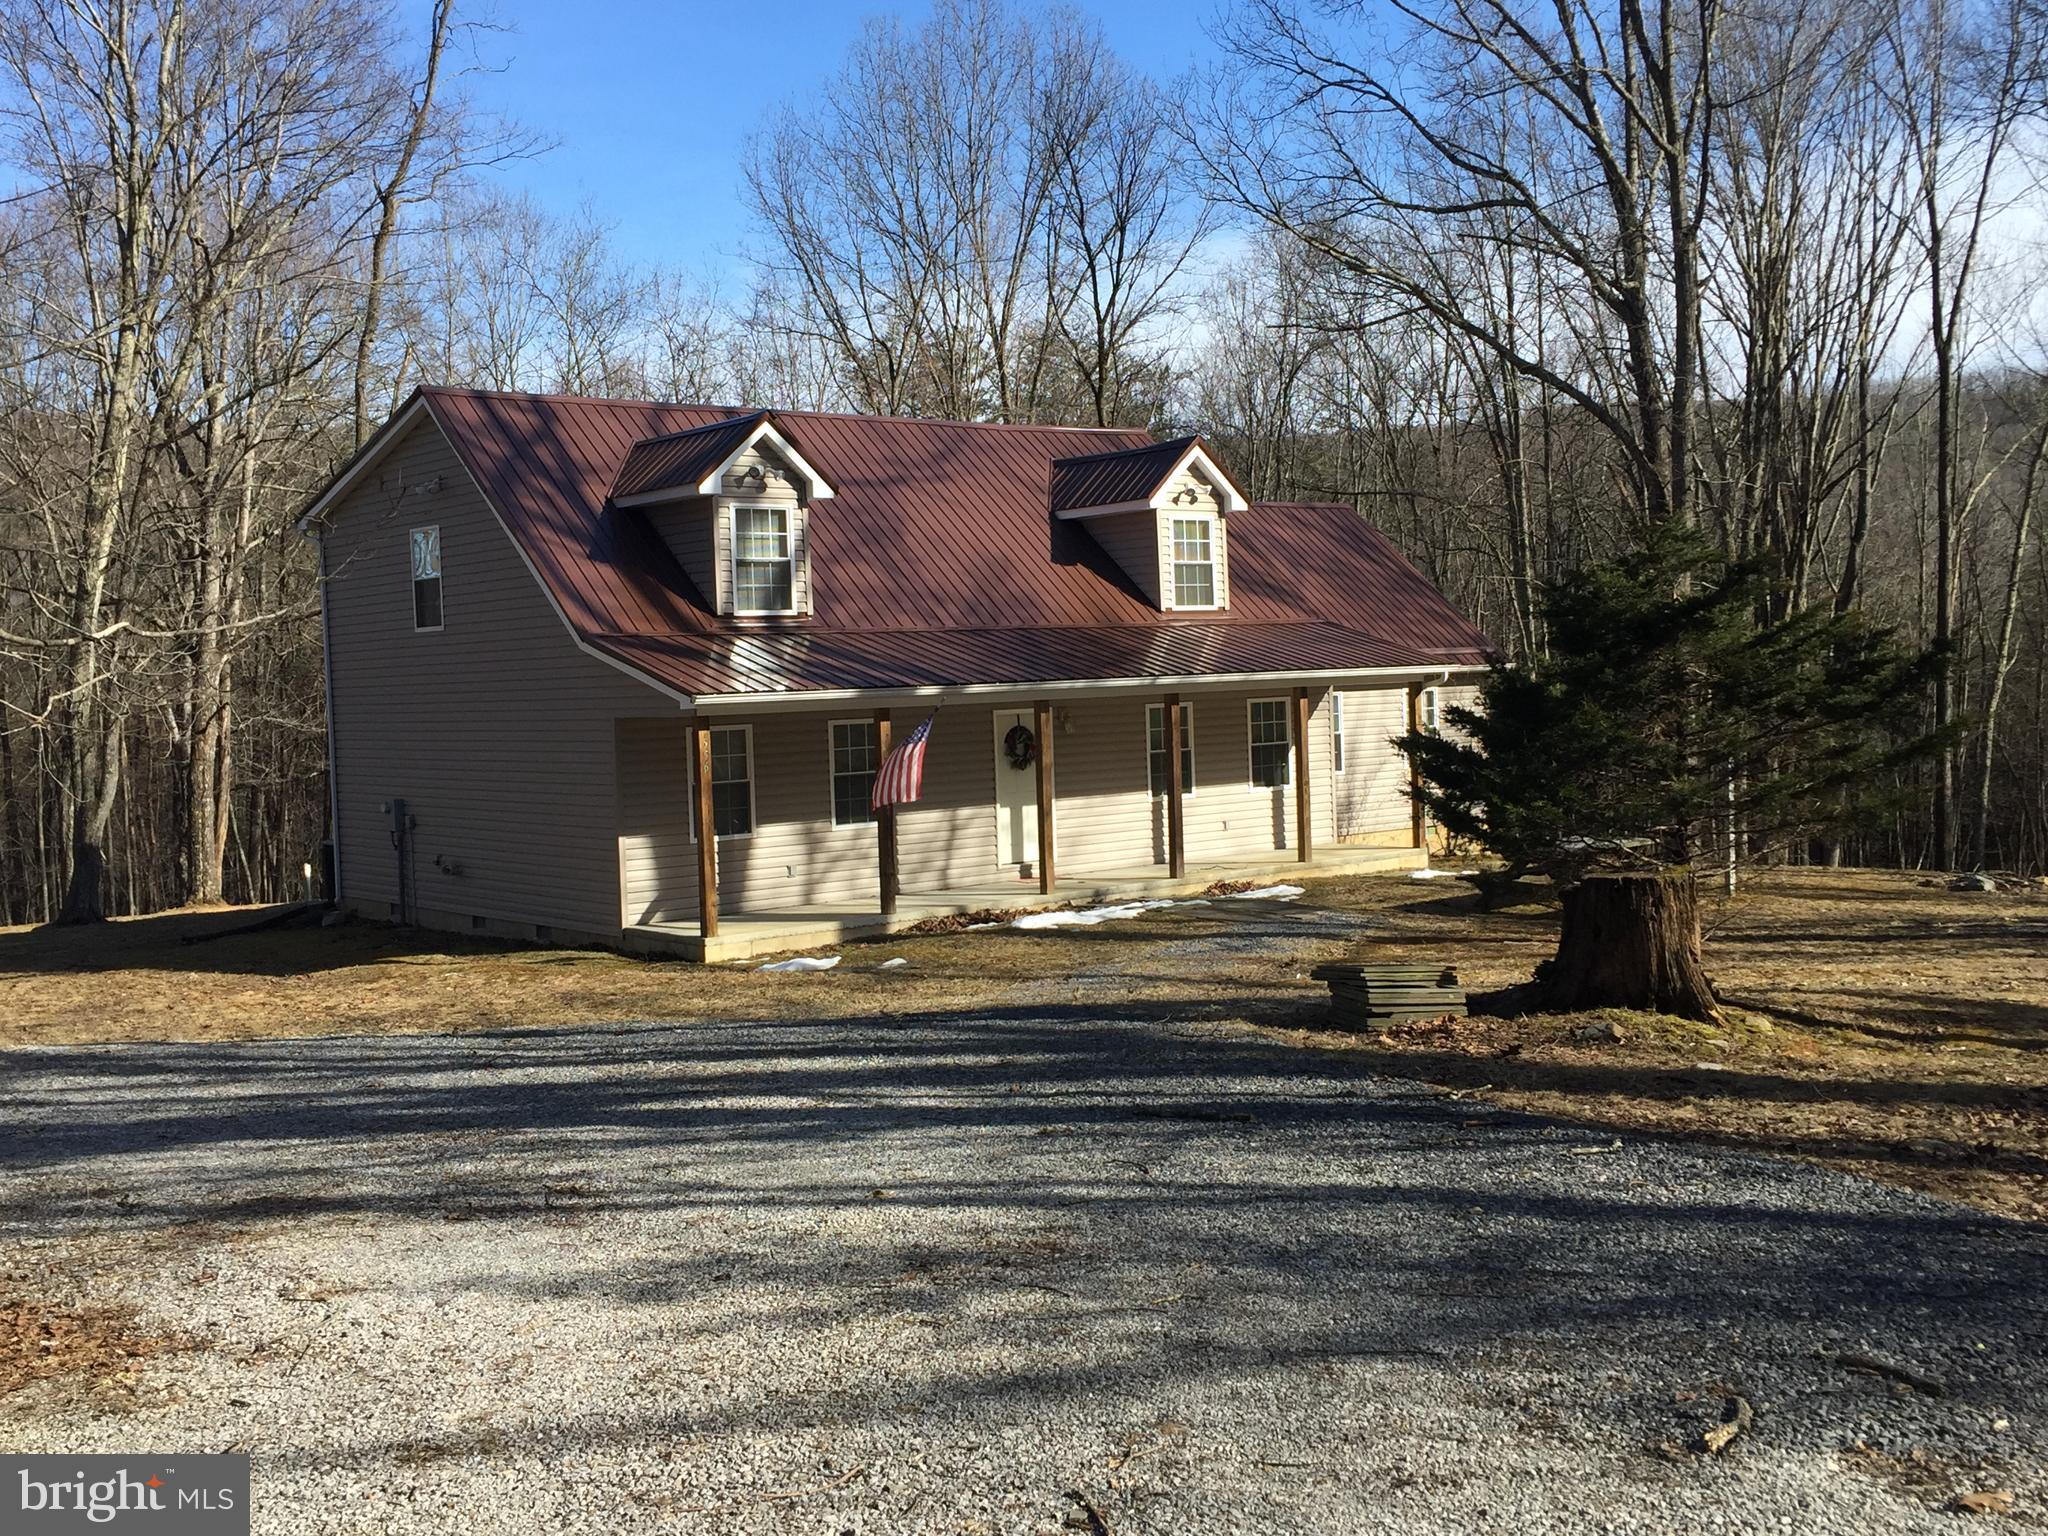 556 HIGHVIEW ROAD, LOST RIVER, WV 26810